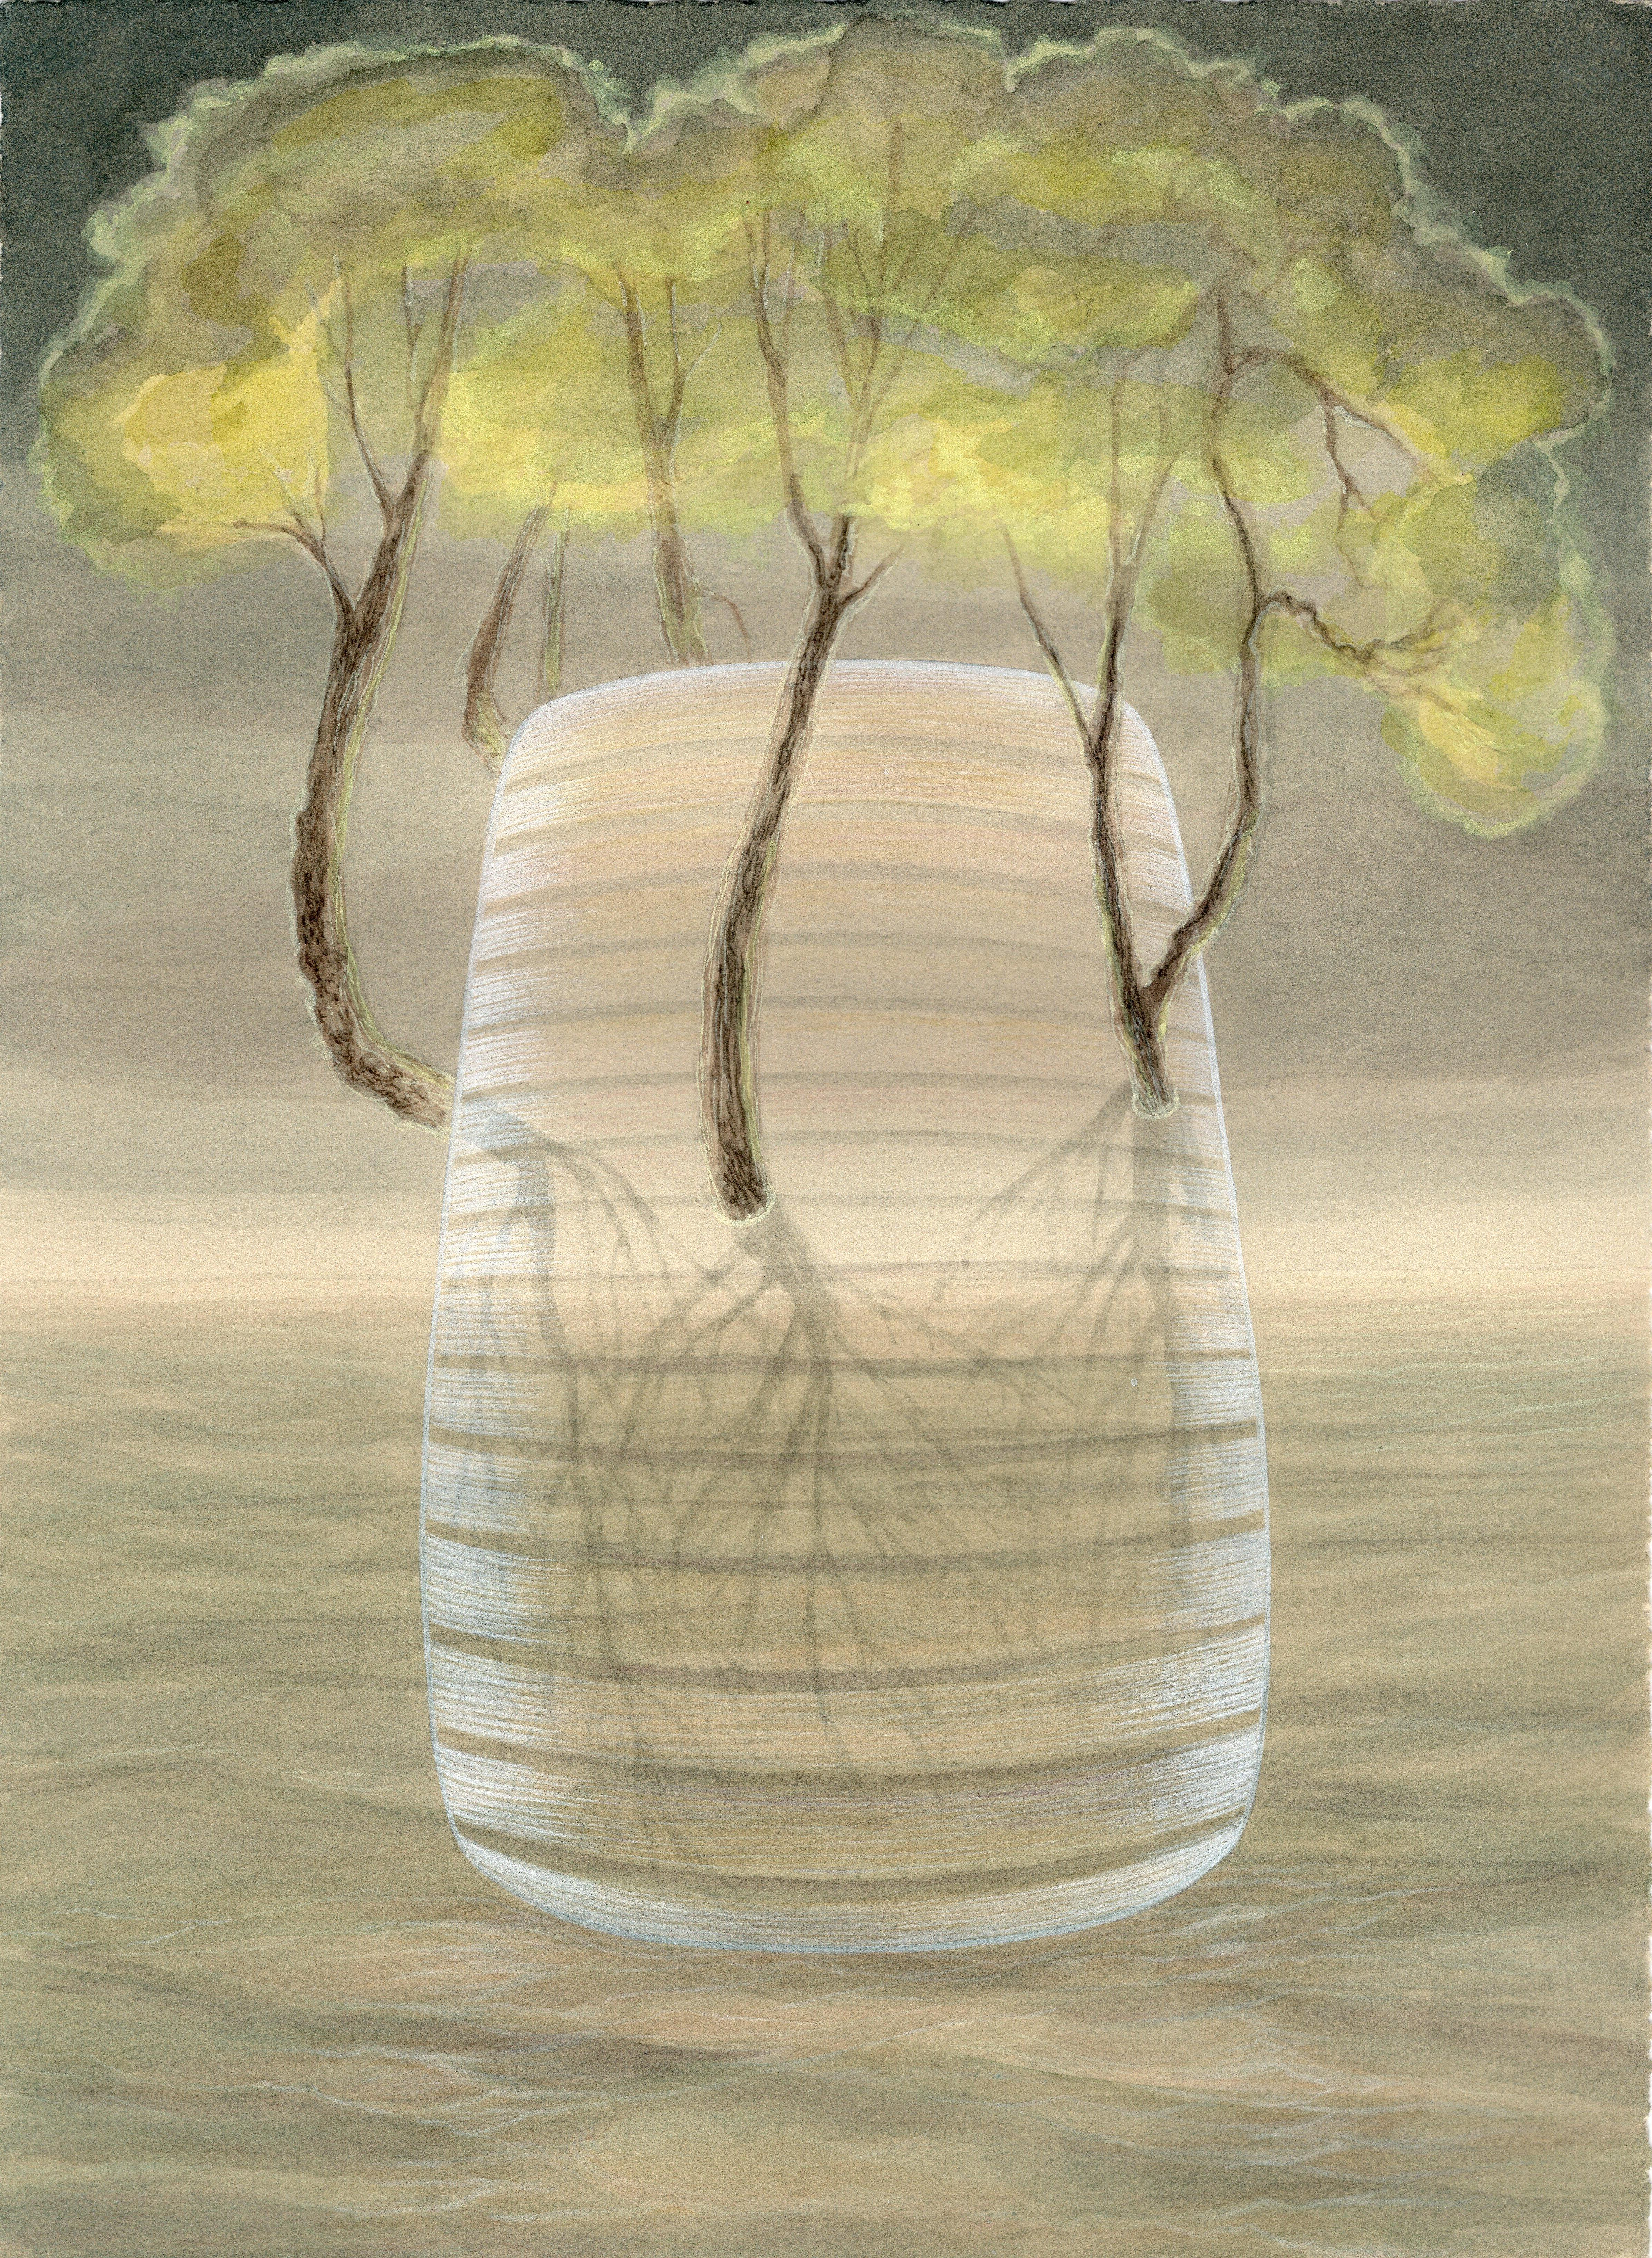 Canopy, Trees Emerging from a Vase, Botanical Watercolor & Gouache on Paper